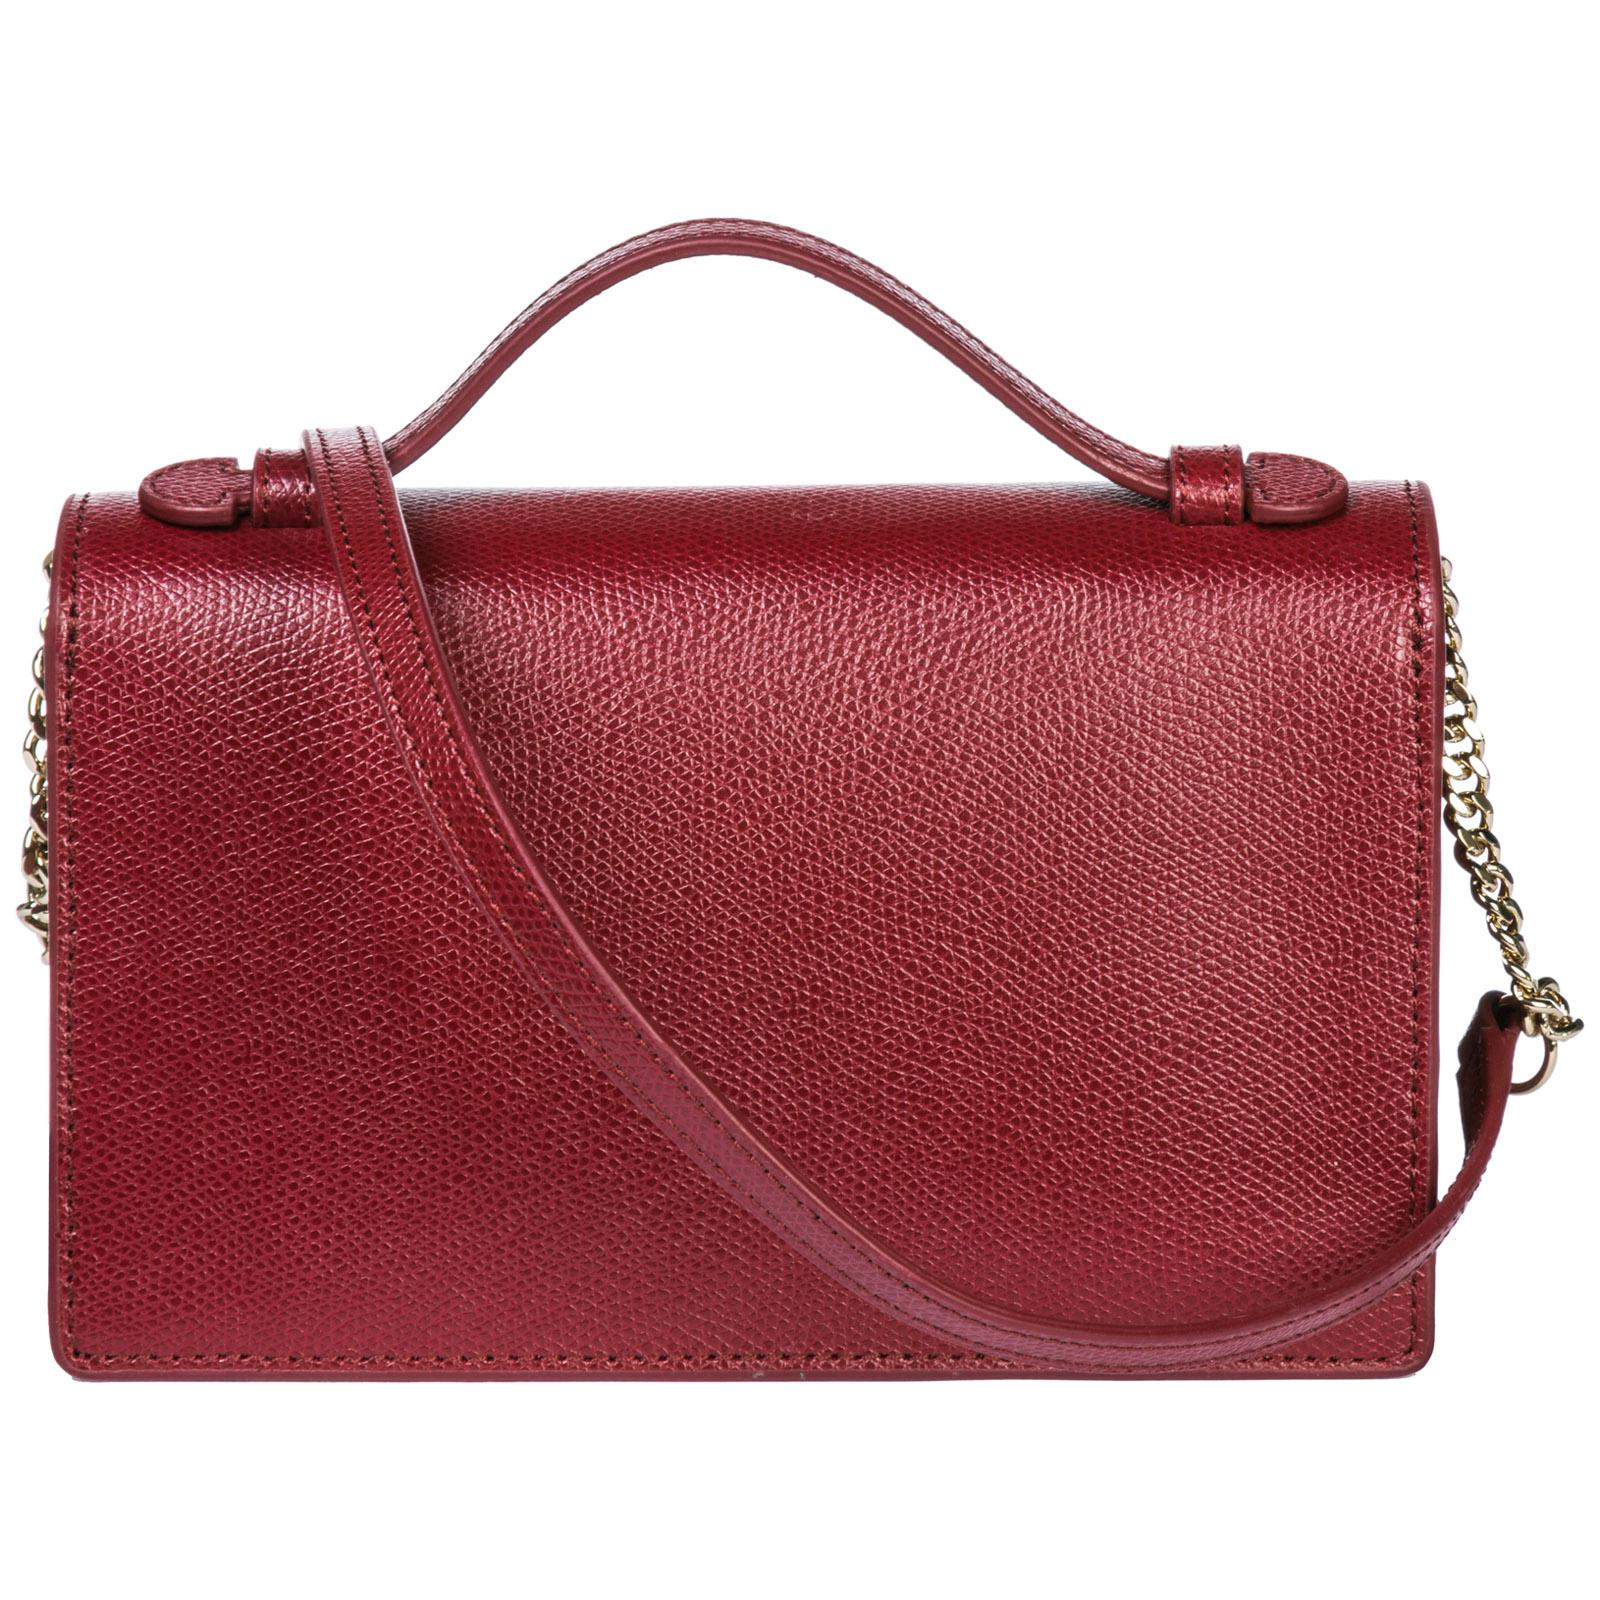 463ebe5aa51127 Lyst - Furla Leather Cross-body Messenger Shoulder Bag Incanto in Red